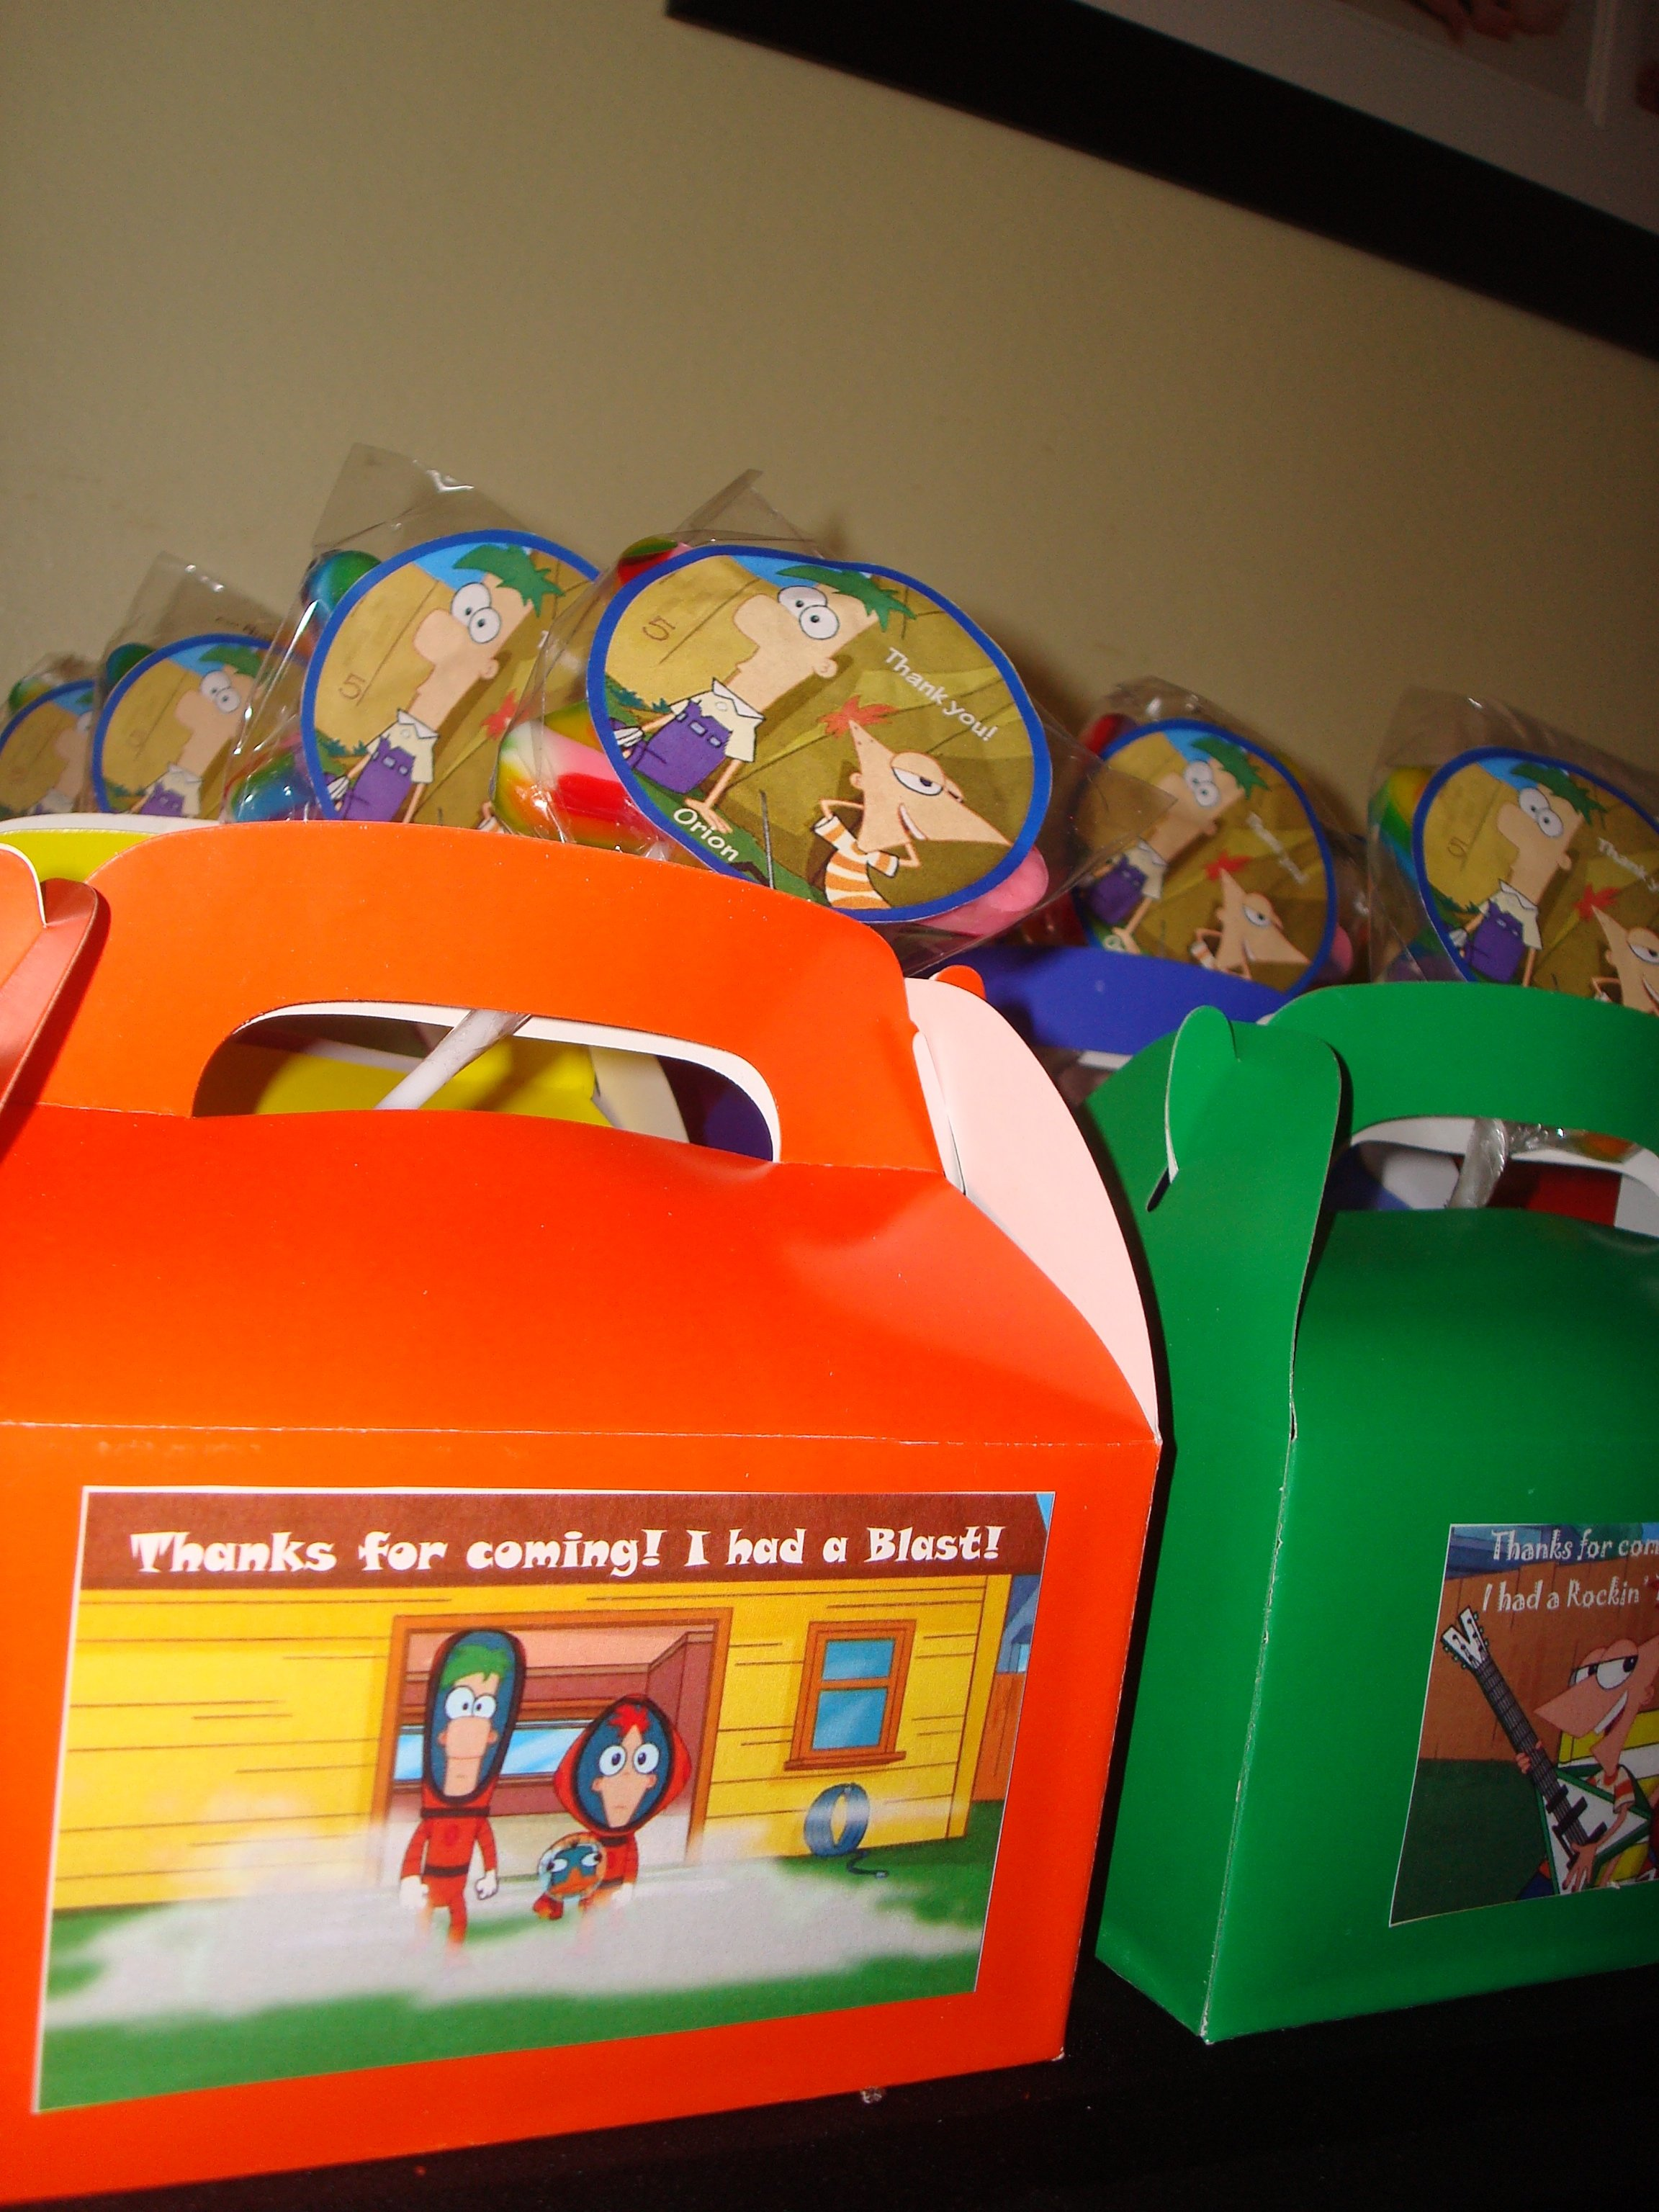 10 Most Popular Phineas And Ferb Party Ideas phineas and ferb birthday wcgevents 2020